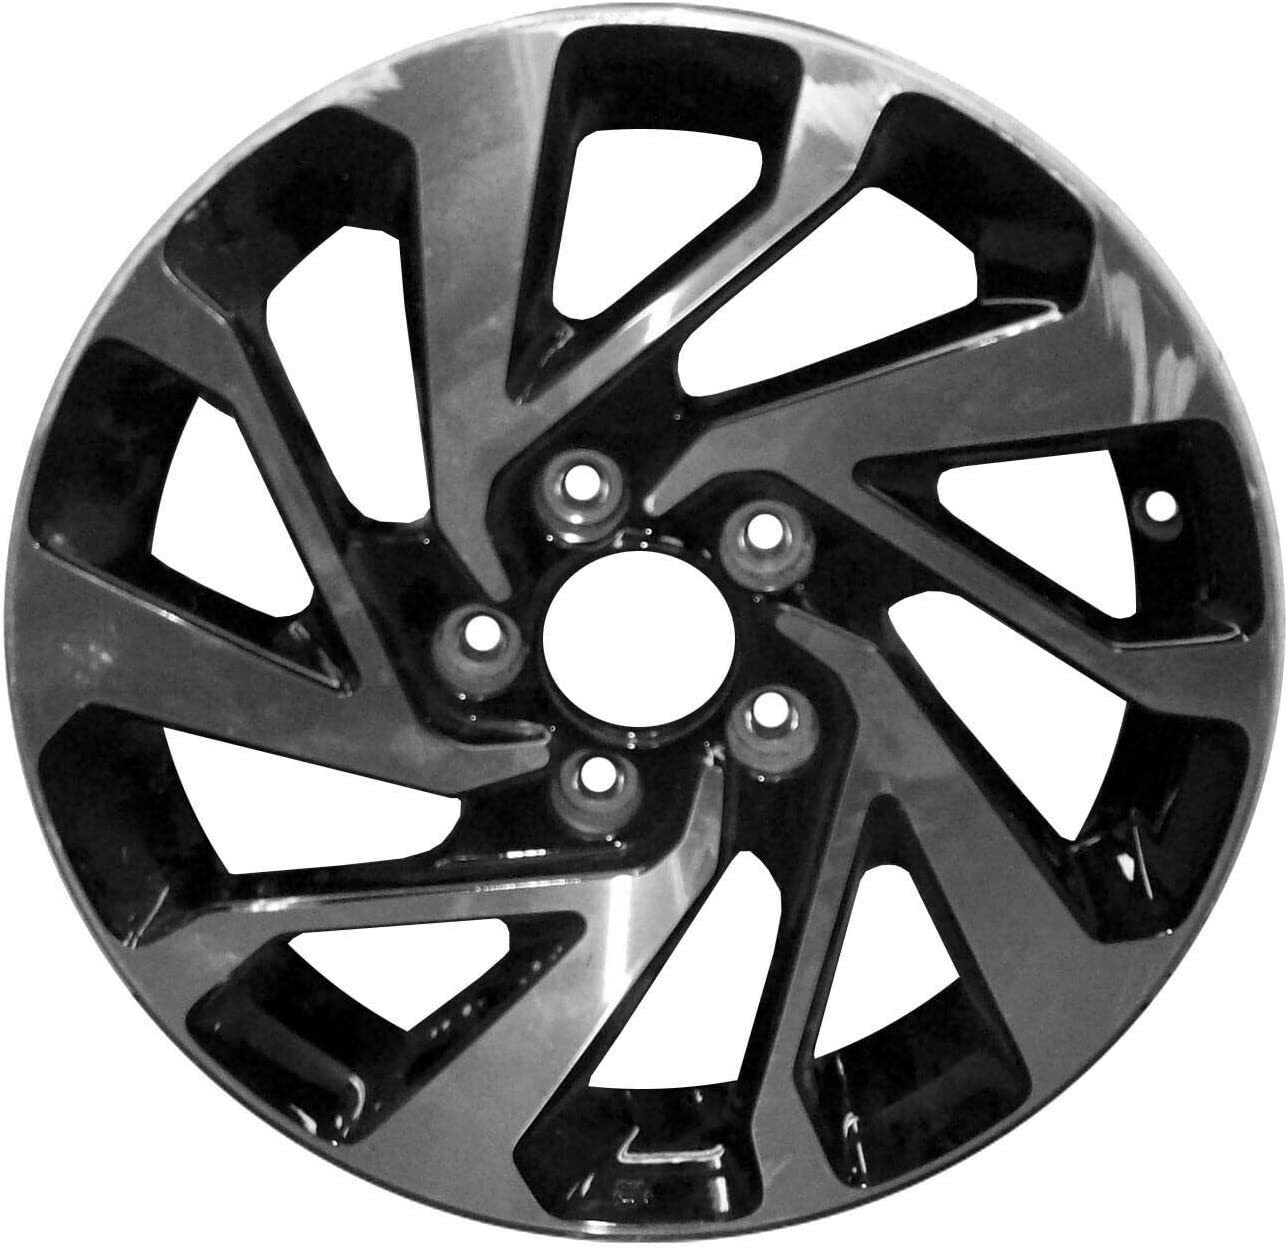 Partsynergy Replacement For New Replica Wheel Rim Alloy Animer and price revision service Aluminum